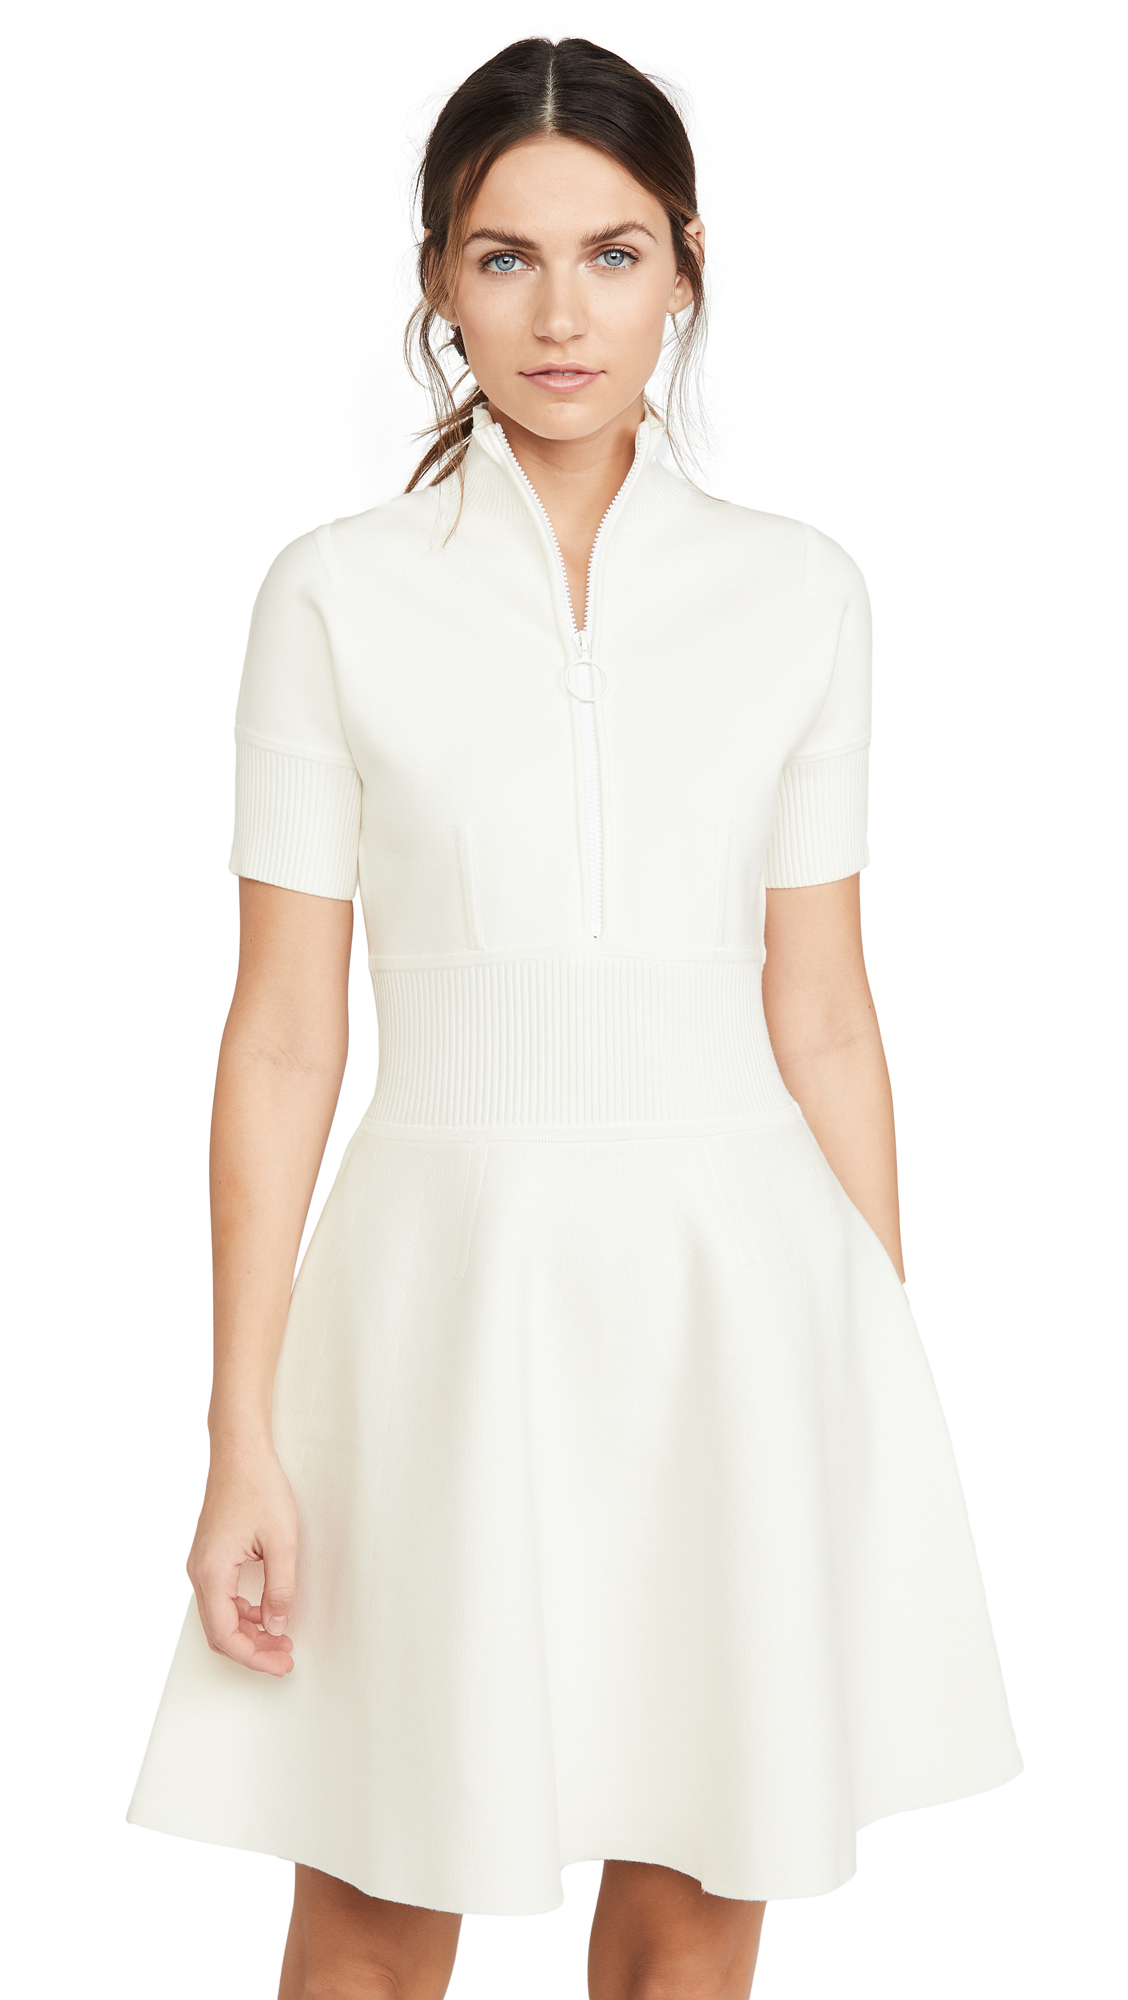 Victoria Victoria Beckham EXL High Neck Mini Dress - 50% Off Sale